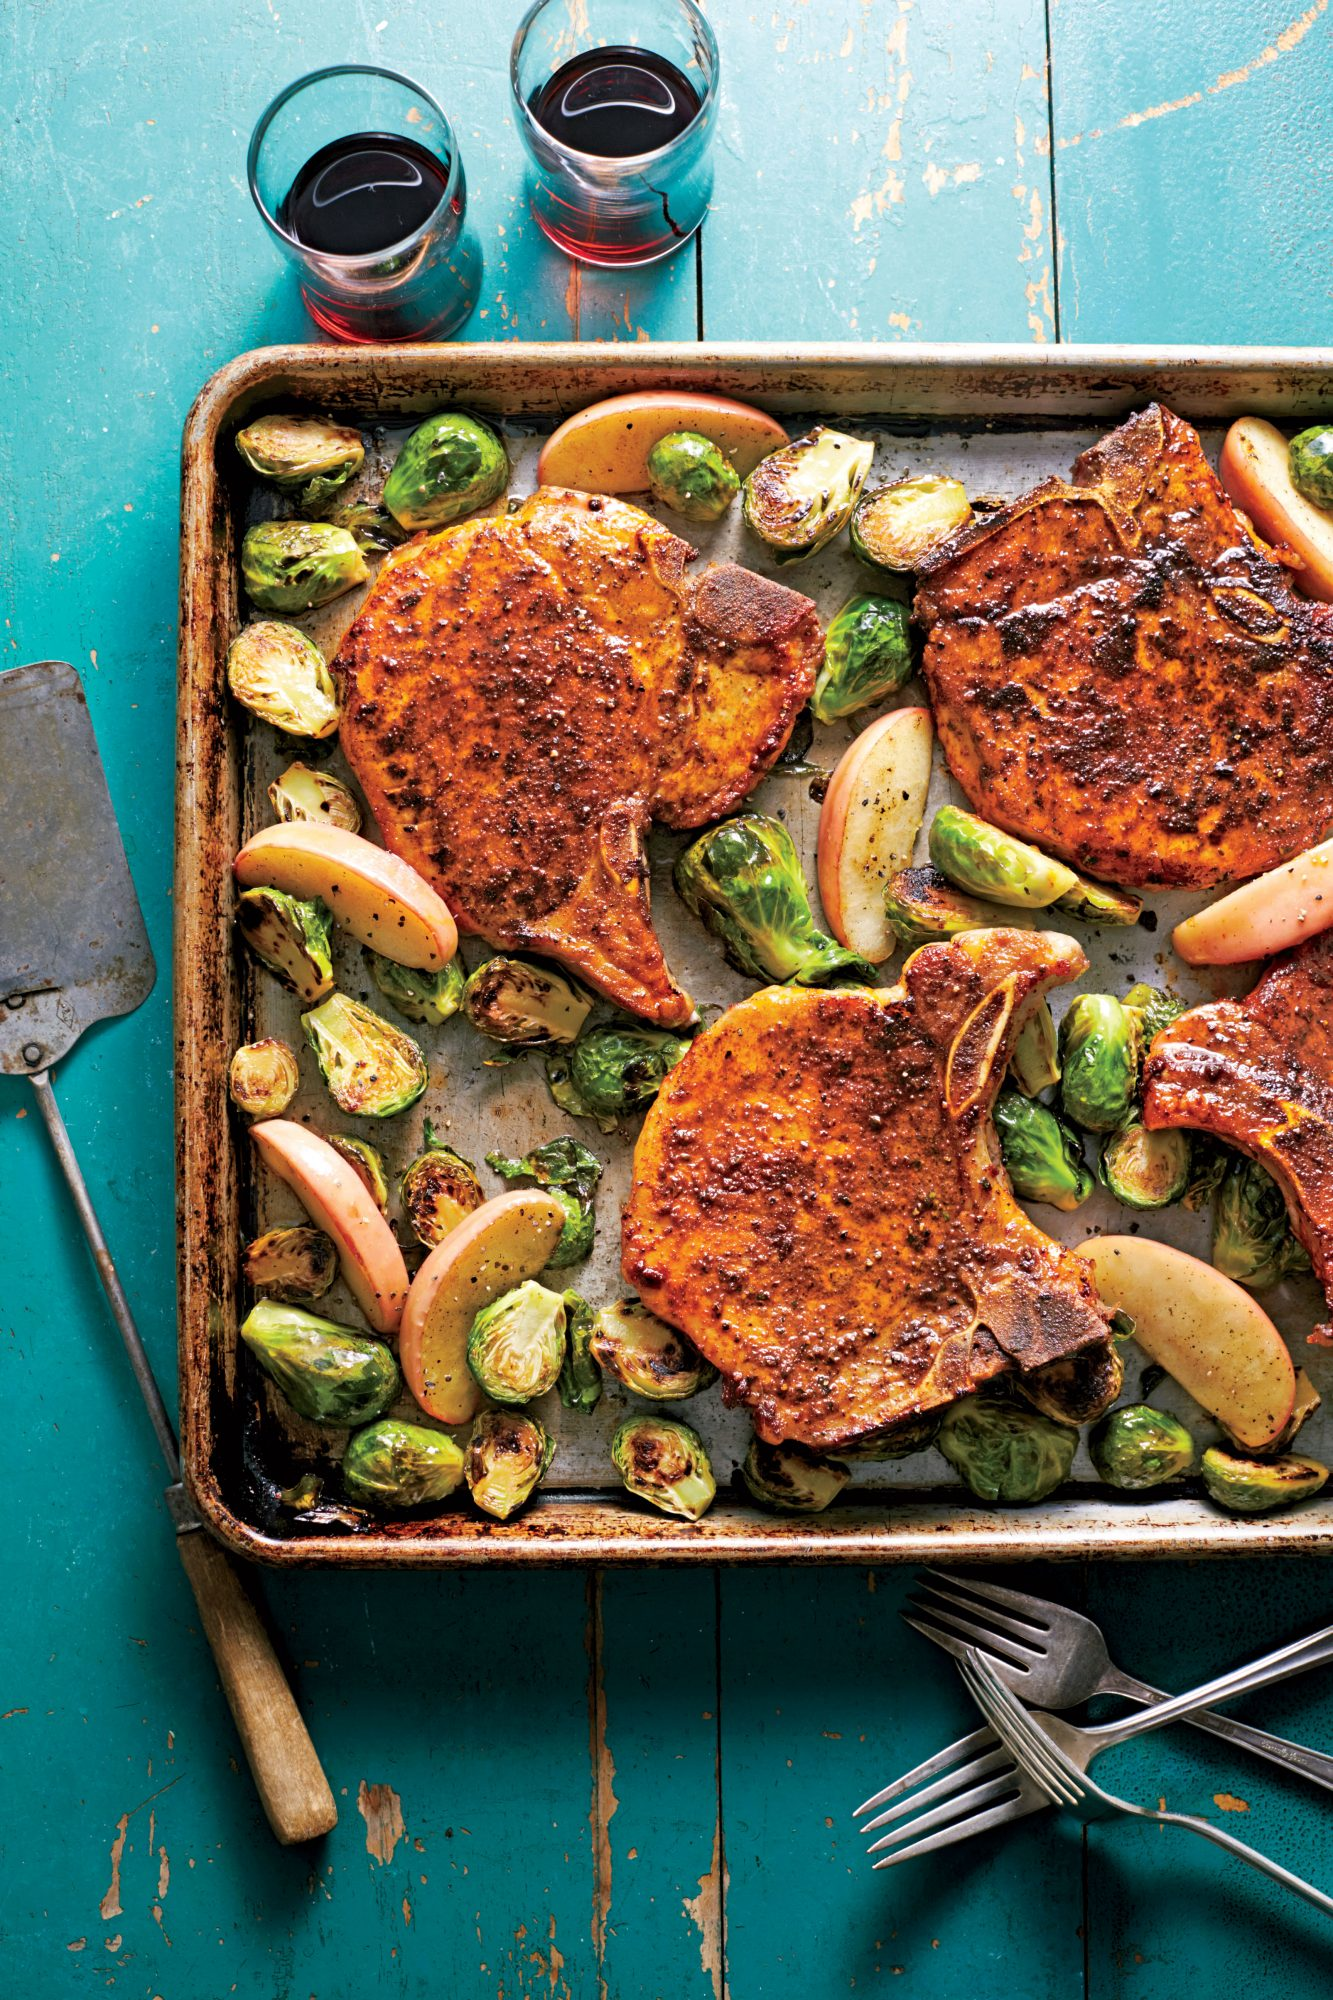 7 Mistakes to Avoid When Cooking Pork Chops - Southern Living